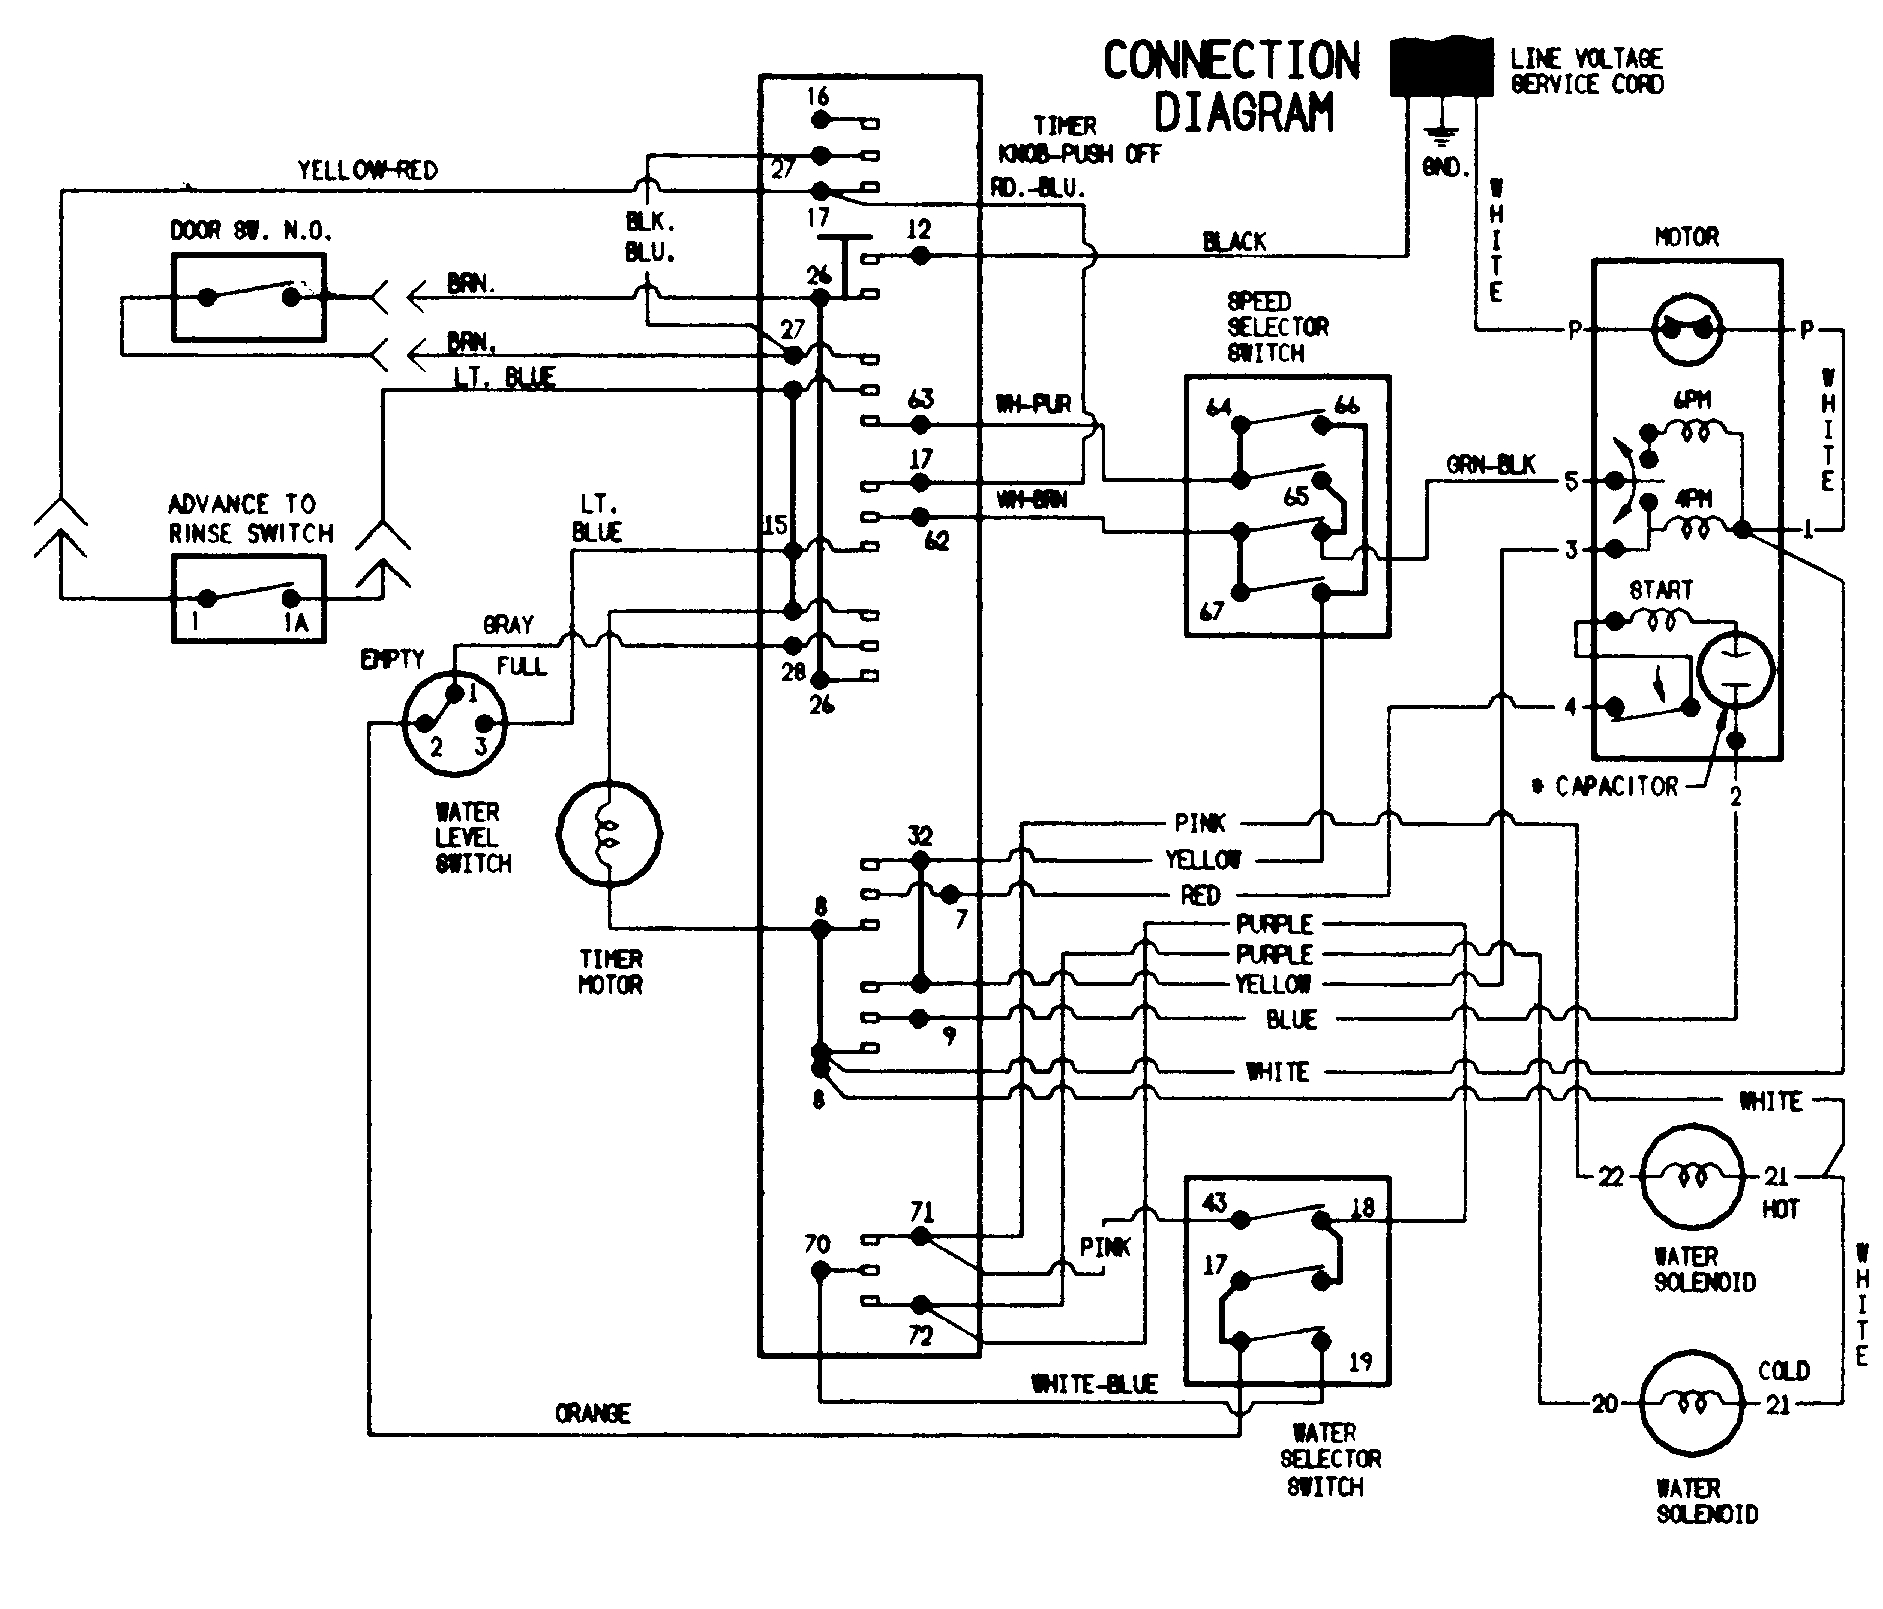 dryer wiring diagram how to wire a dryer outlet 3 prong e280a2 sharedw regarding kenmore 80 series dryer parts diagram dryer wiring diagram how to wire a dryer outlet 3 prong \u2022 sharedw kenmore dryer wiring schematic at gsmx.co